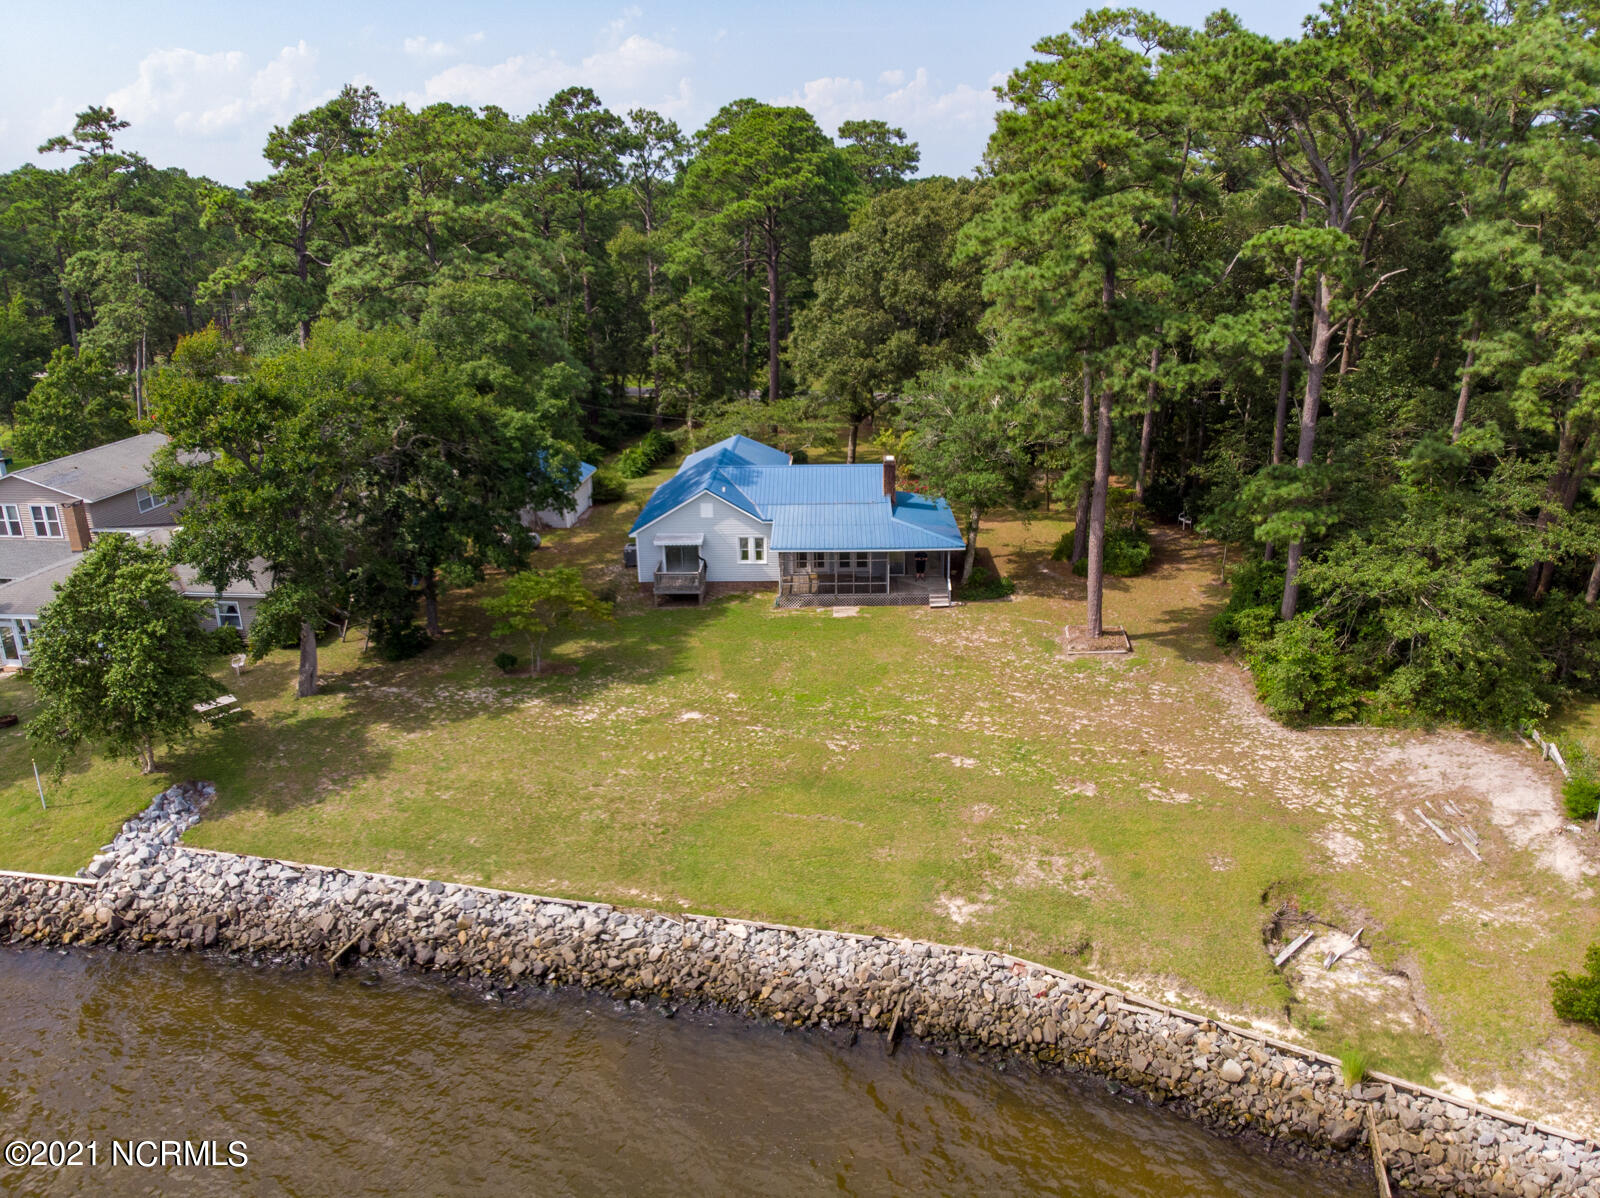 2371 Old Pamlico Beach Road, Belhaven, North Carolina 27810, 3 Bedrooms Bedrooms, 6 Rooms Rooms,2 BathroomsBathrooms,Single family residence,For sale,Old Pamlico Beach,100284025